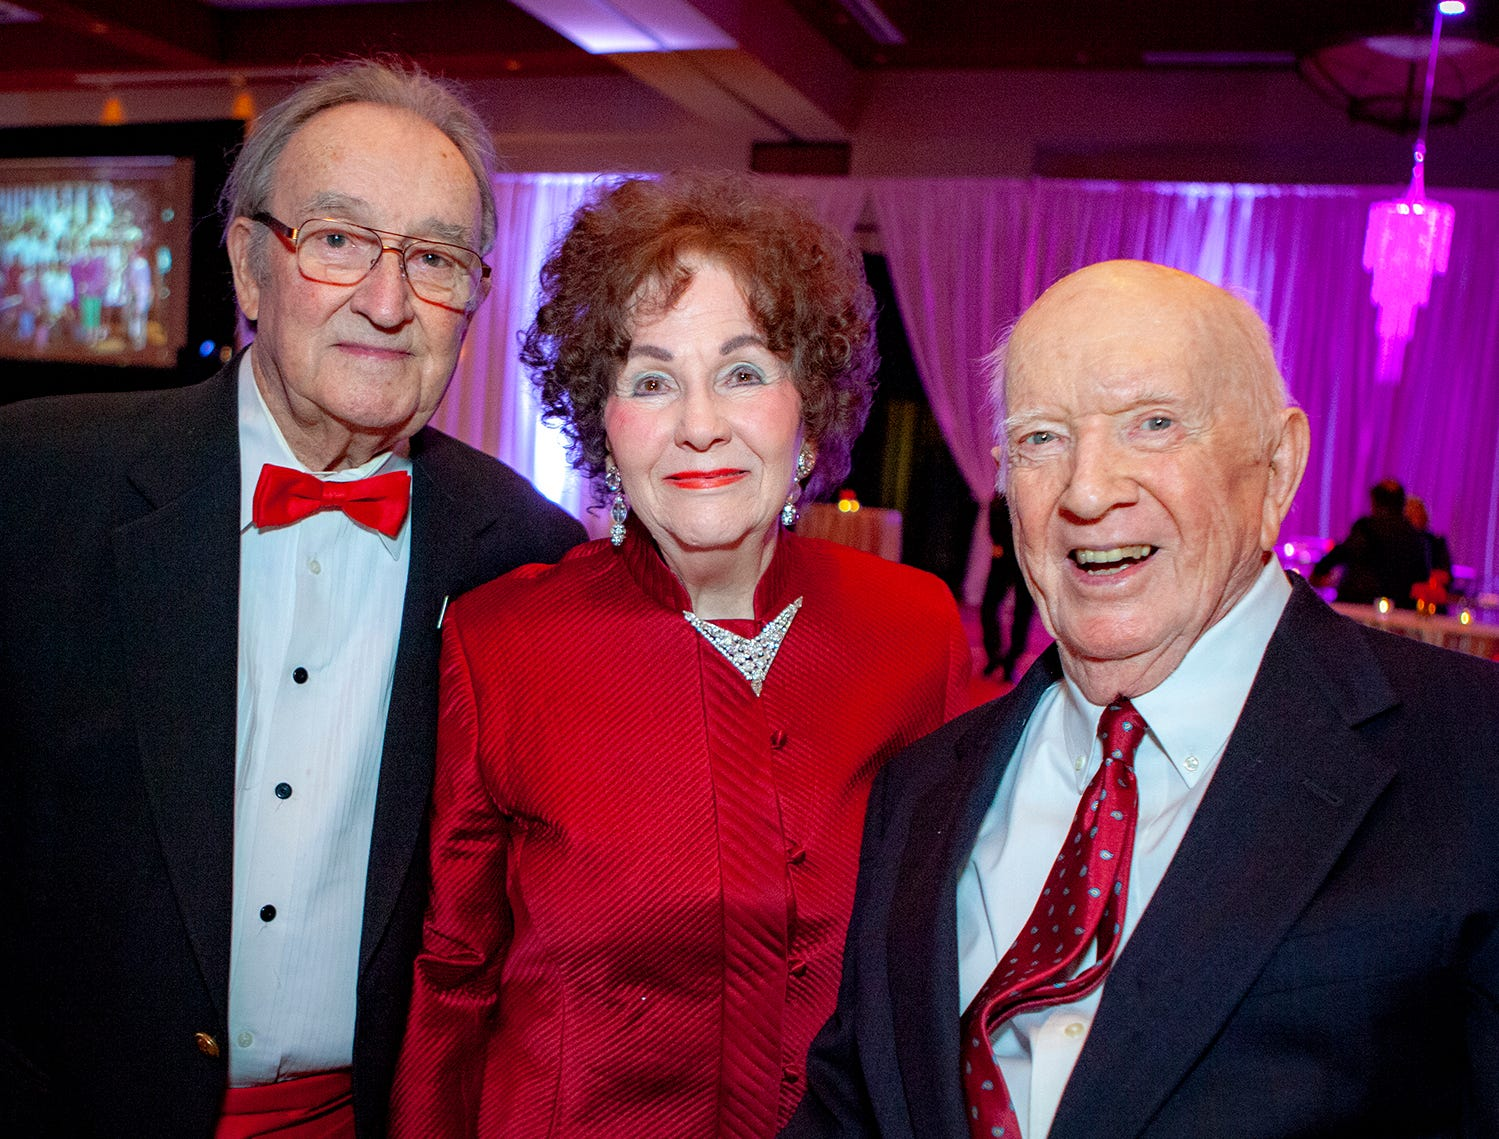 Herby and Shirley LaRoche Powell with Jack Sant Amour at the 2019 Saint Thomas Rutherford Foundation Gala on Saturday, Jan. 19, 2019 at Embassy Suites Murfreesboro.